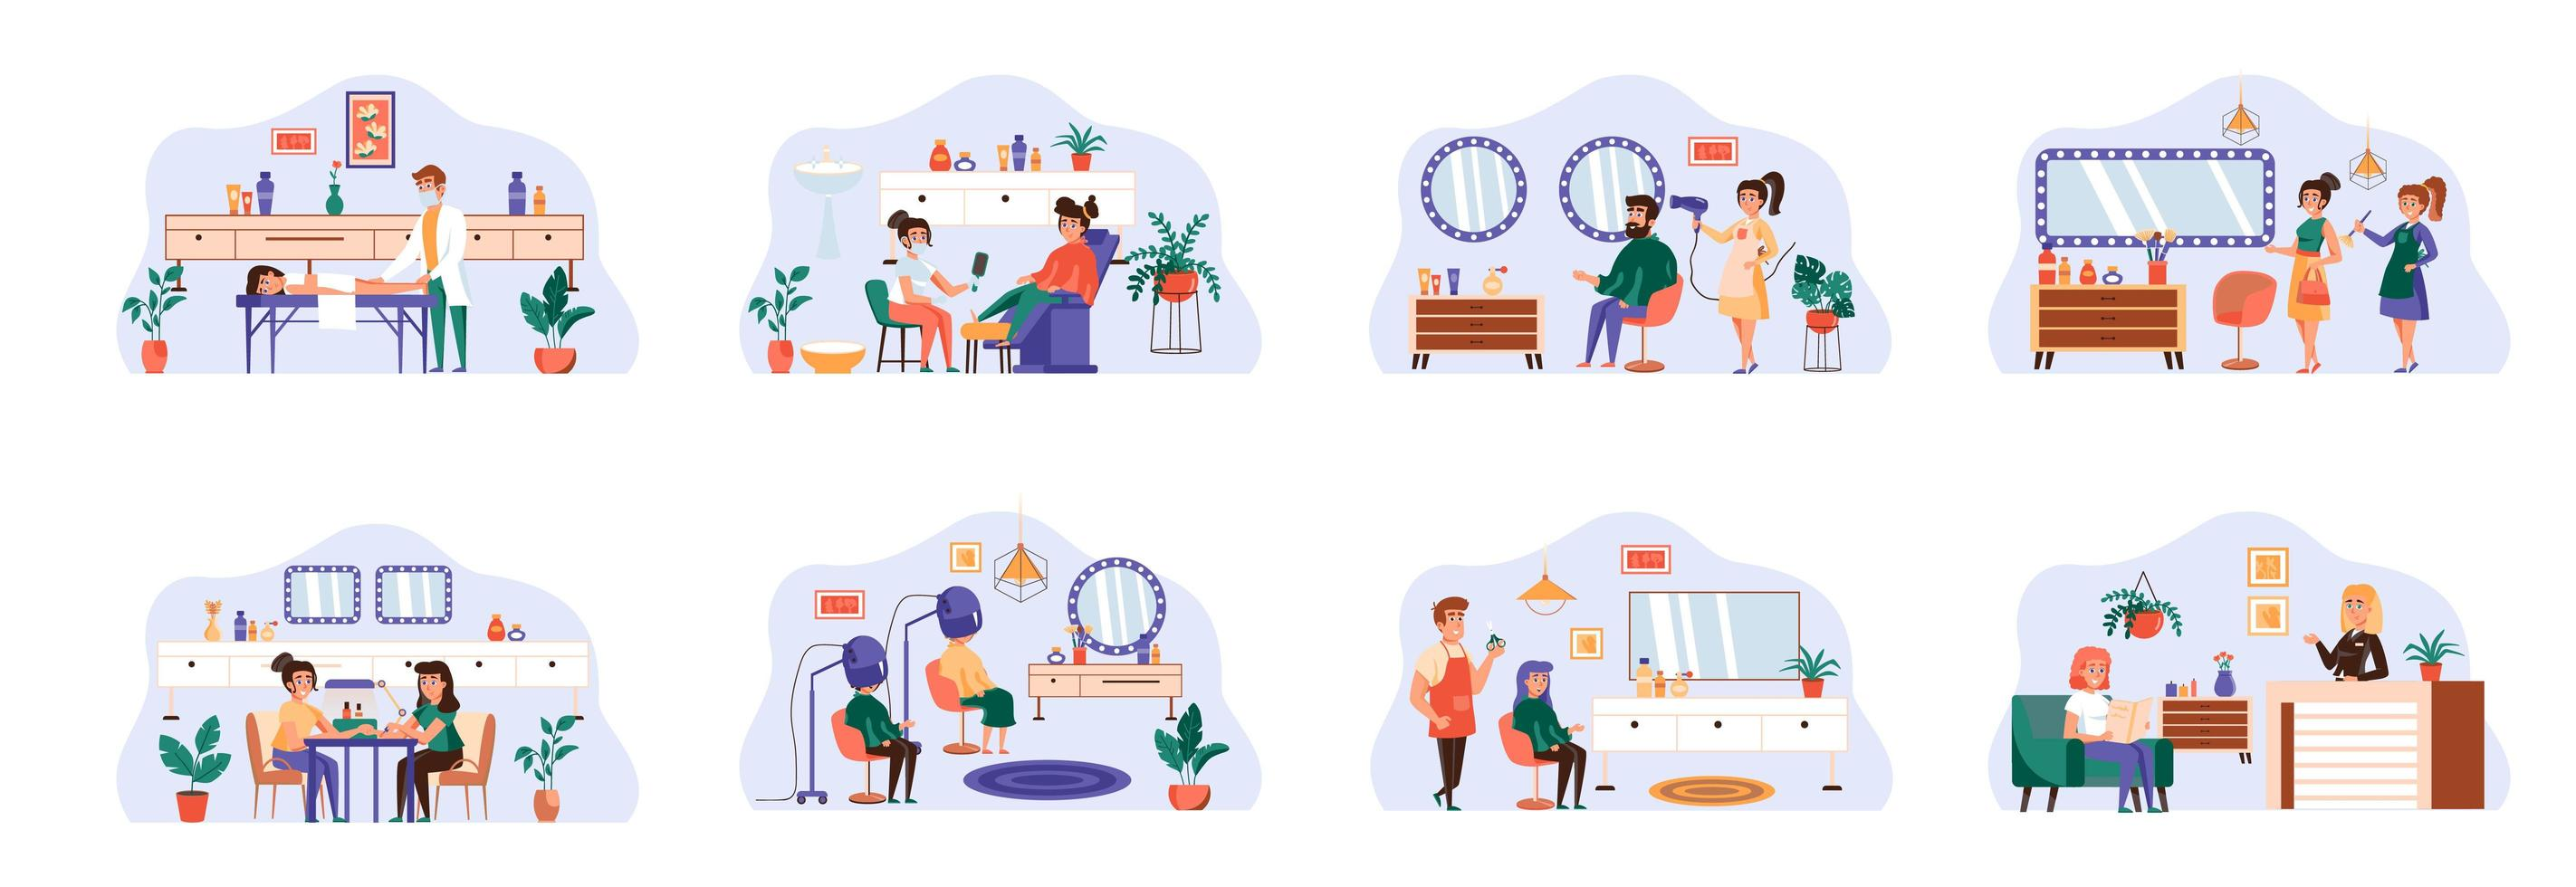 Beauty salon bundle of scenes with flat people characters. vector